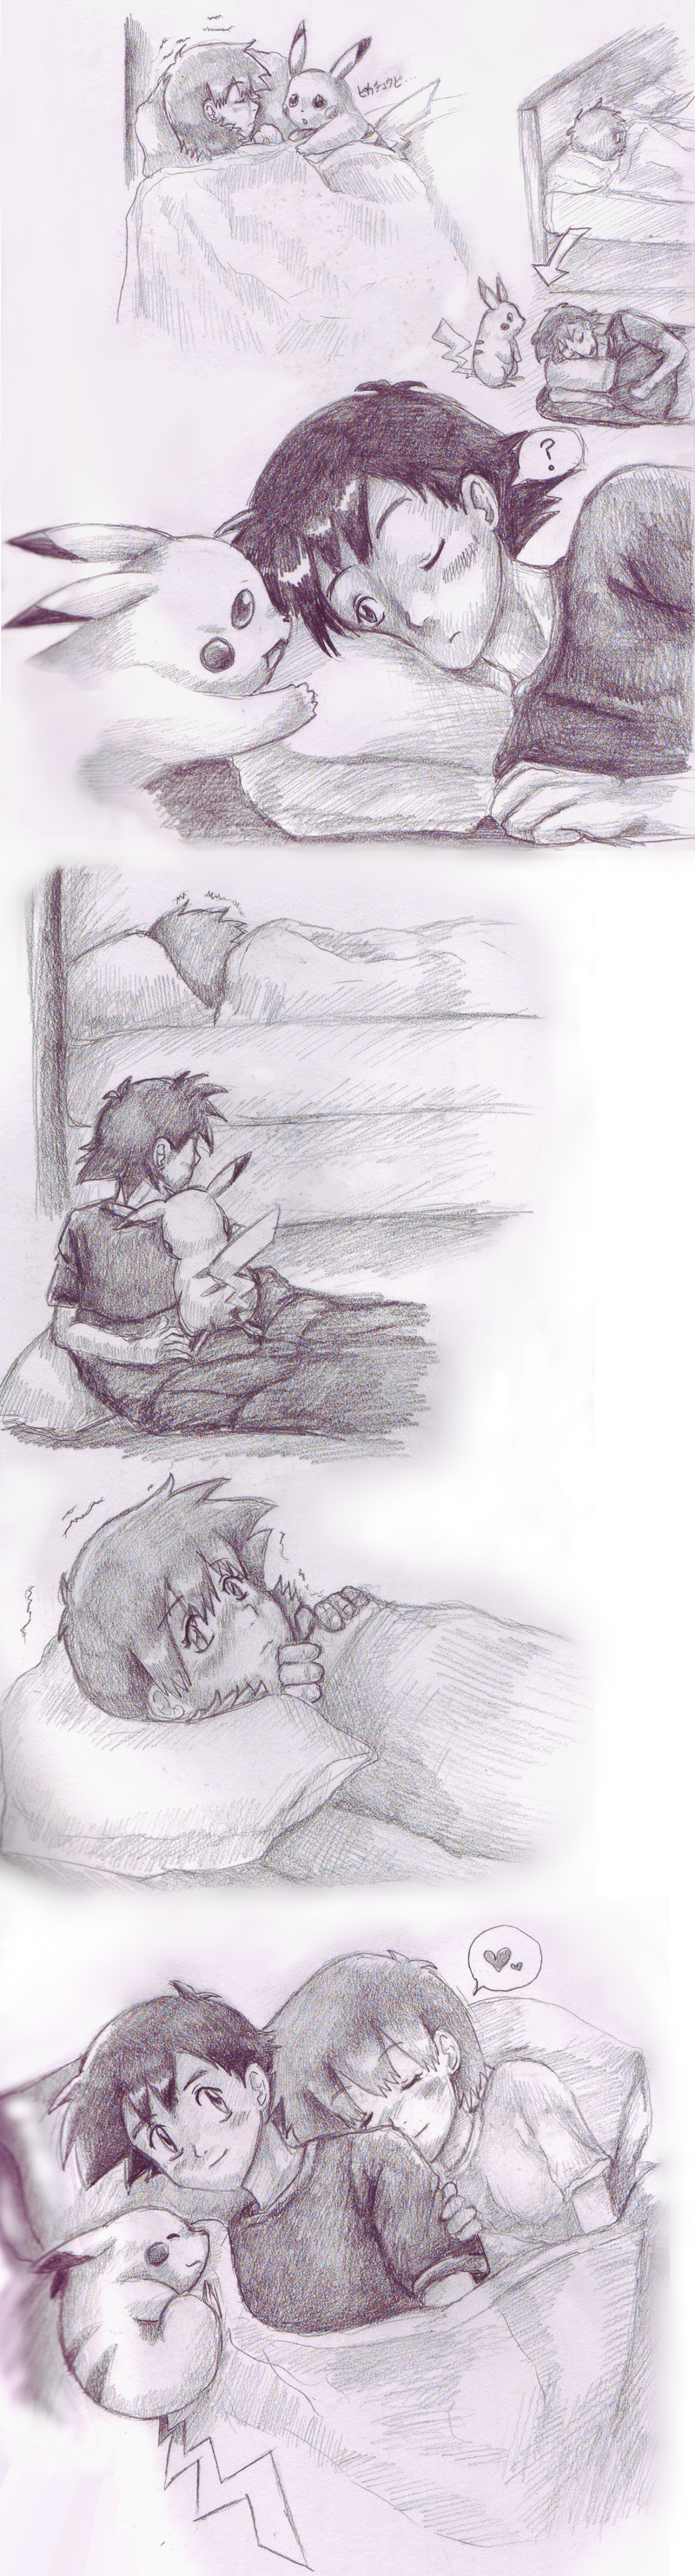 i u0027ll keep you warm by pacificpikachu deviantart com on deviantart